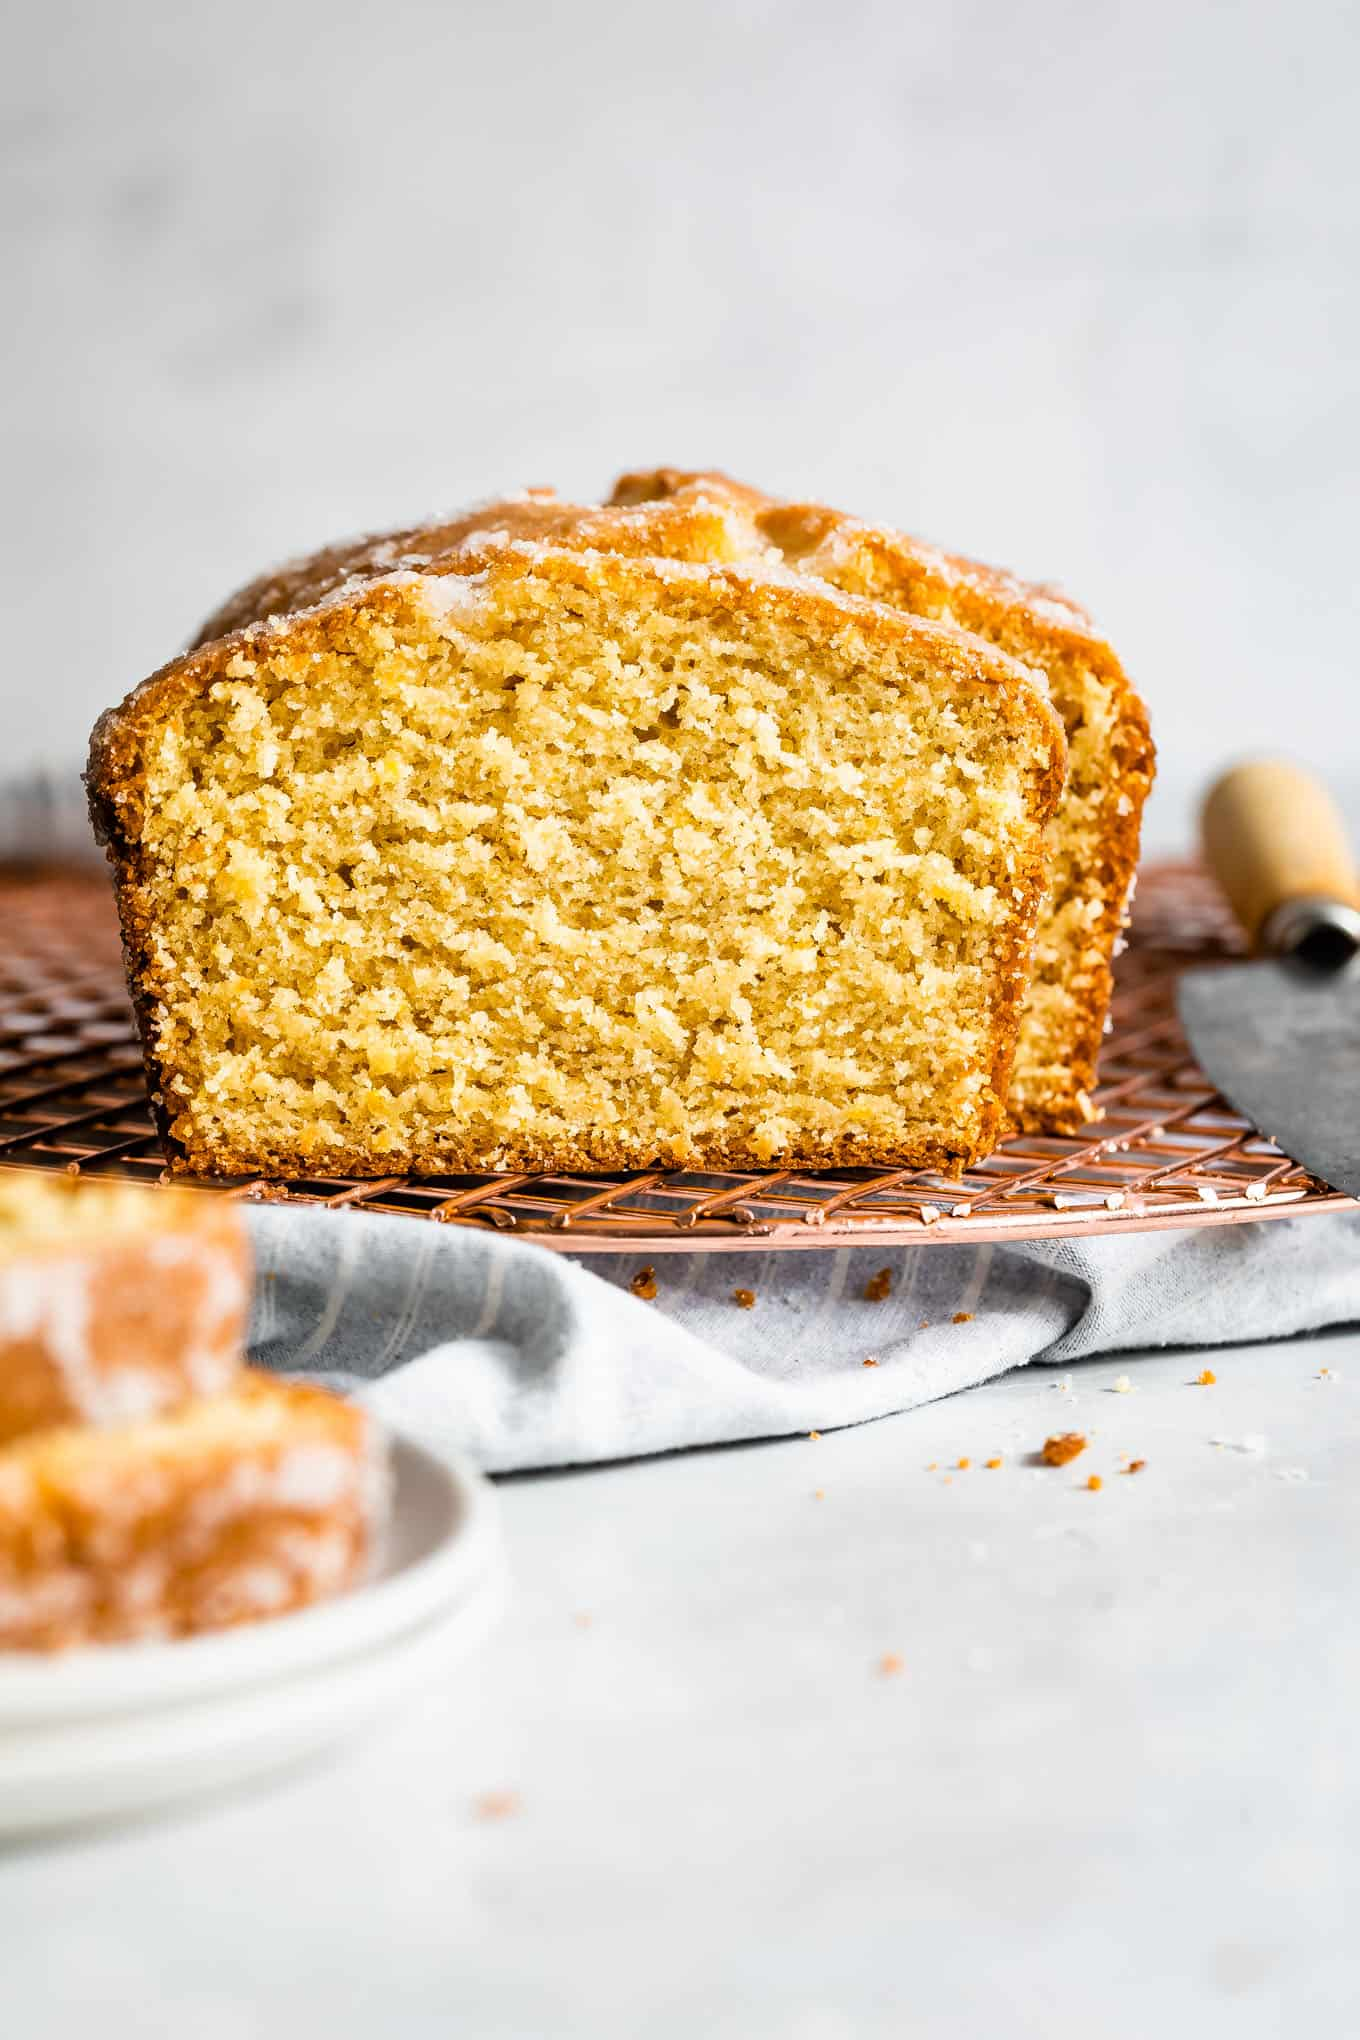 Gluten-Free Lemon Drizzle Cake Cross-Section